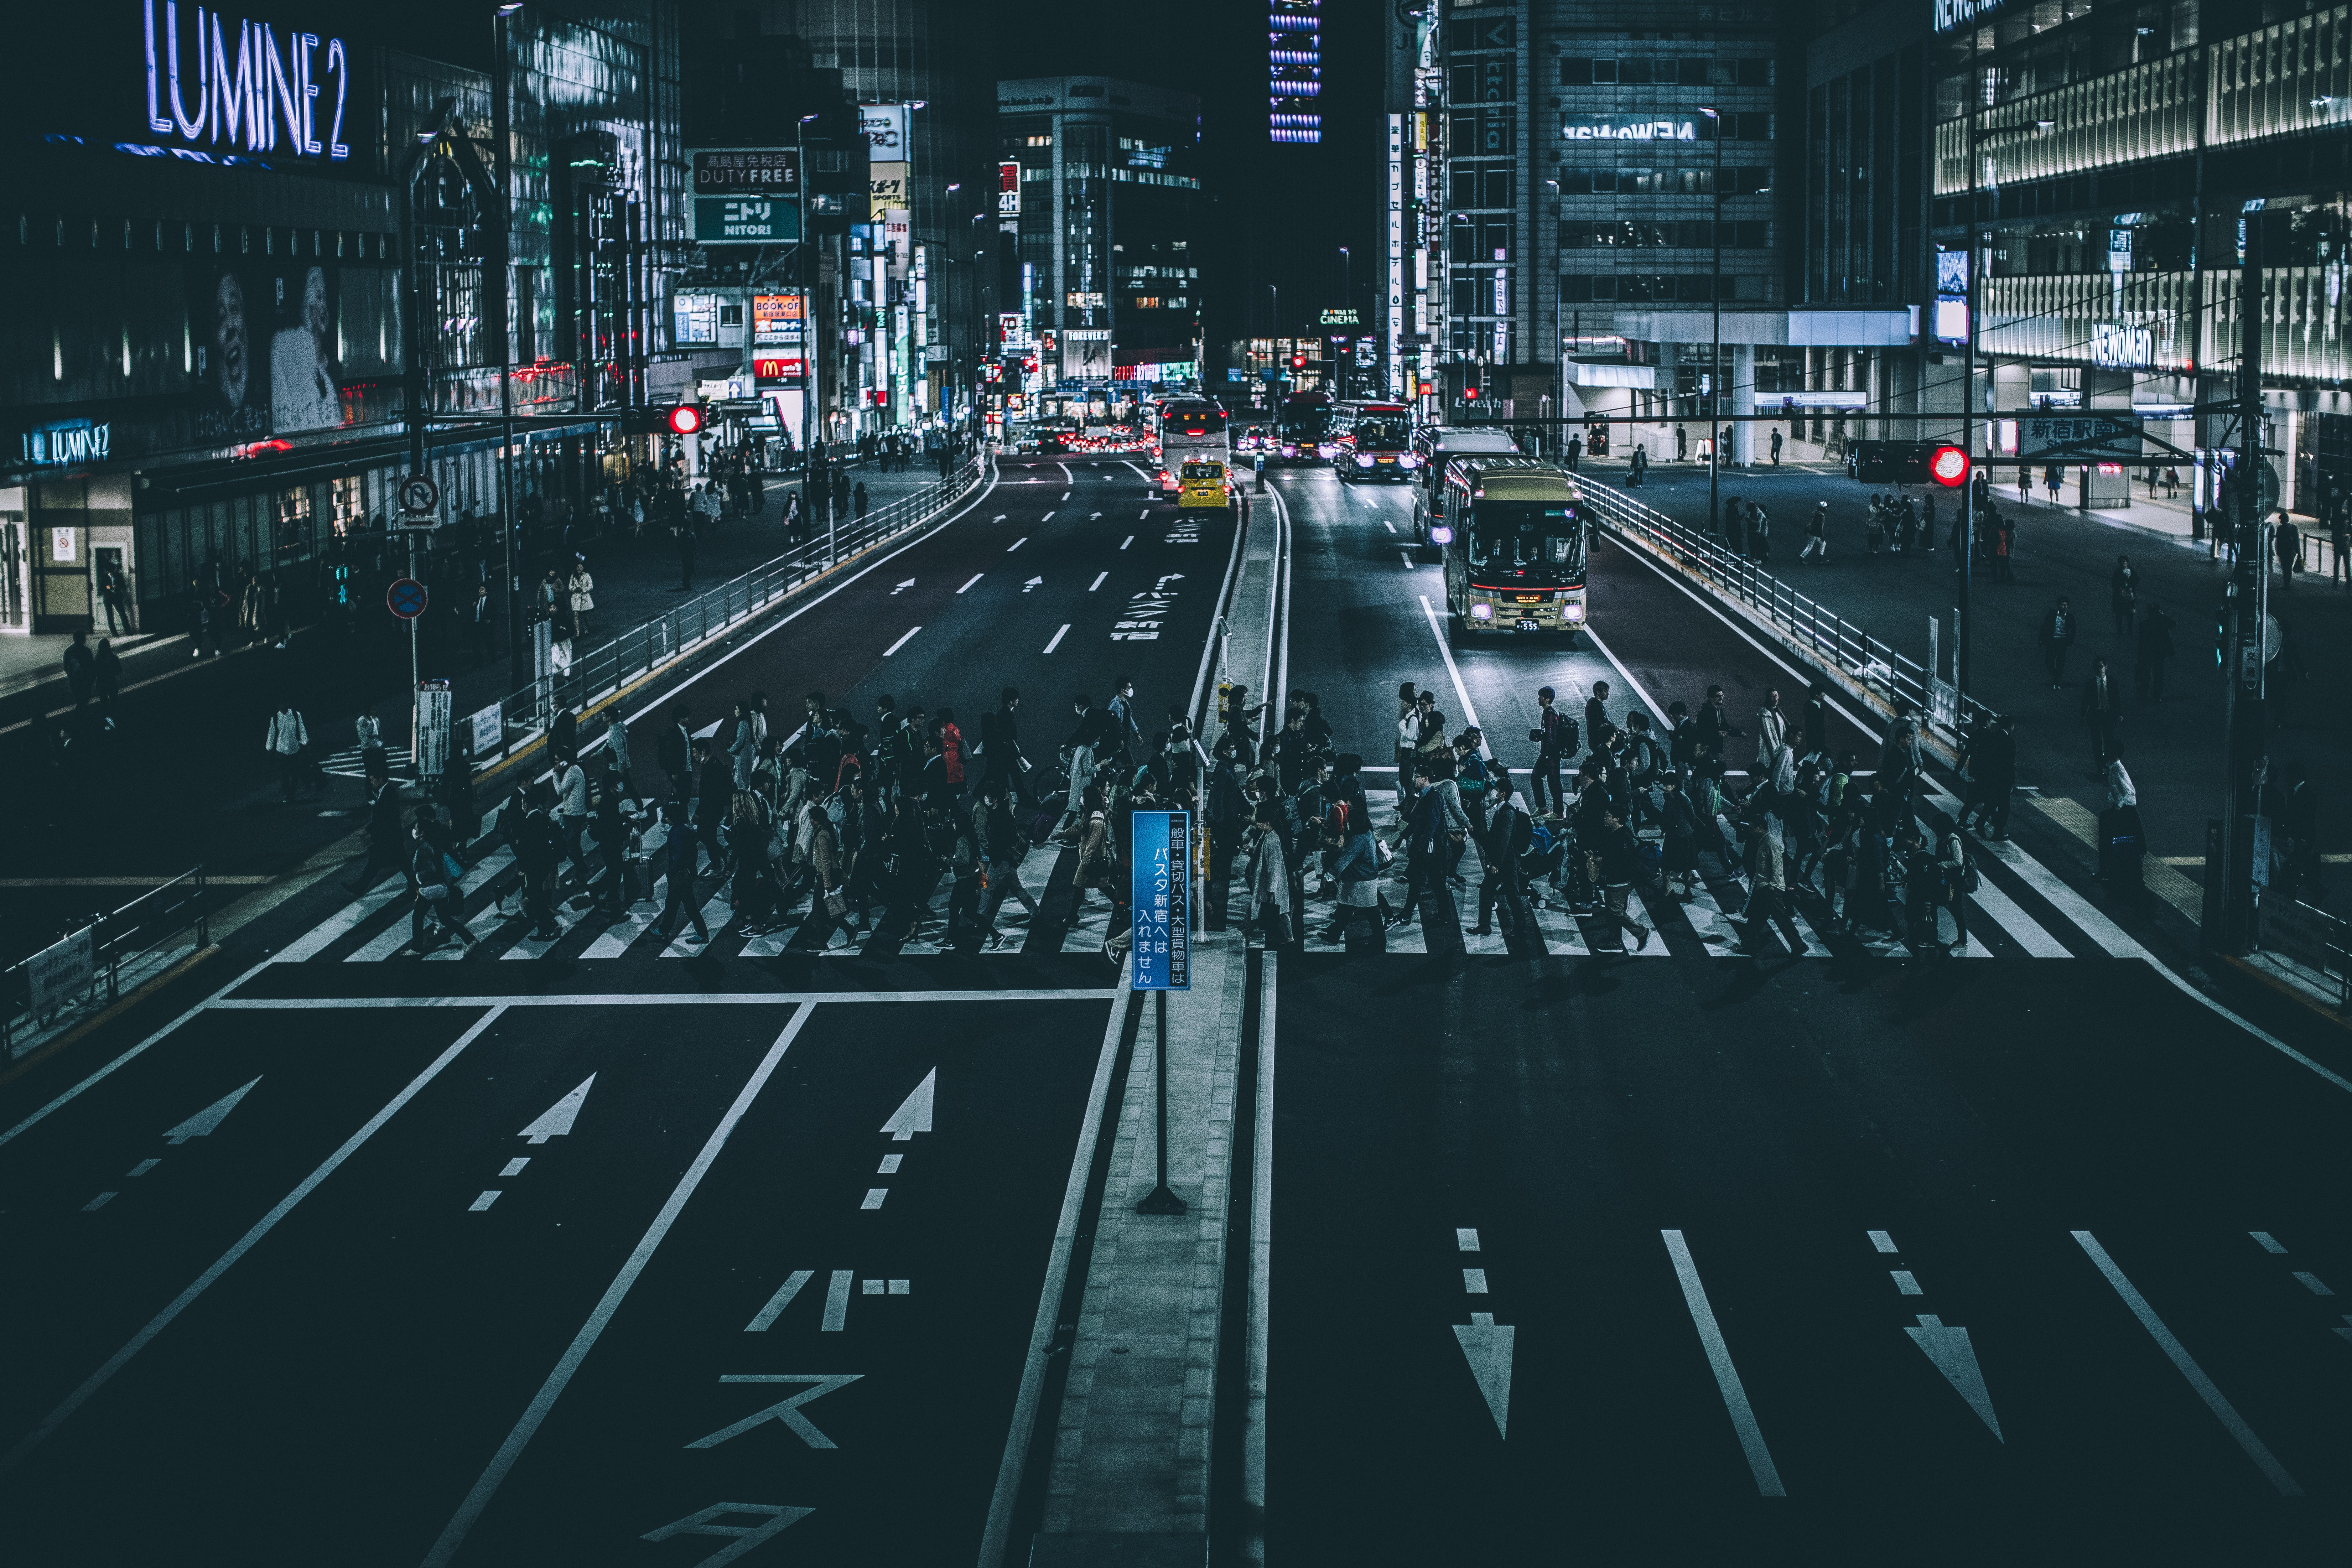 A crowded crosswalk in Tokyo at night